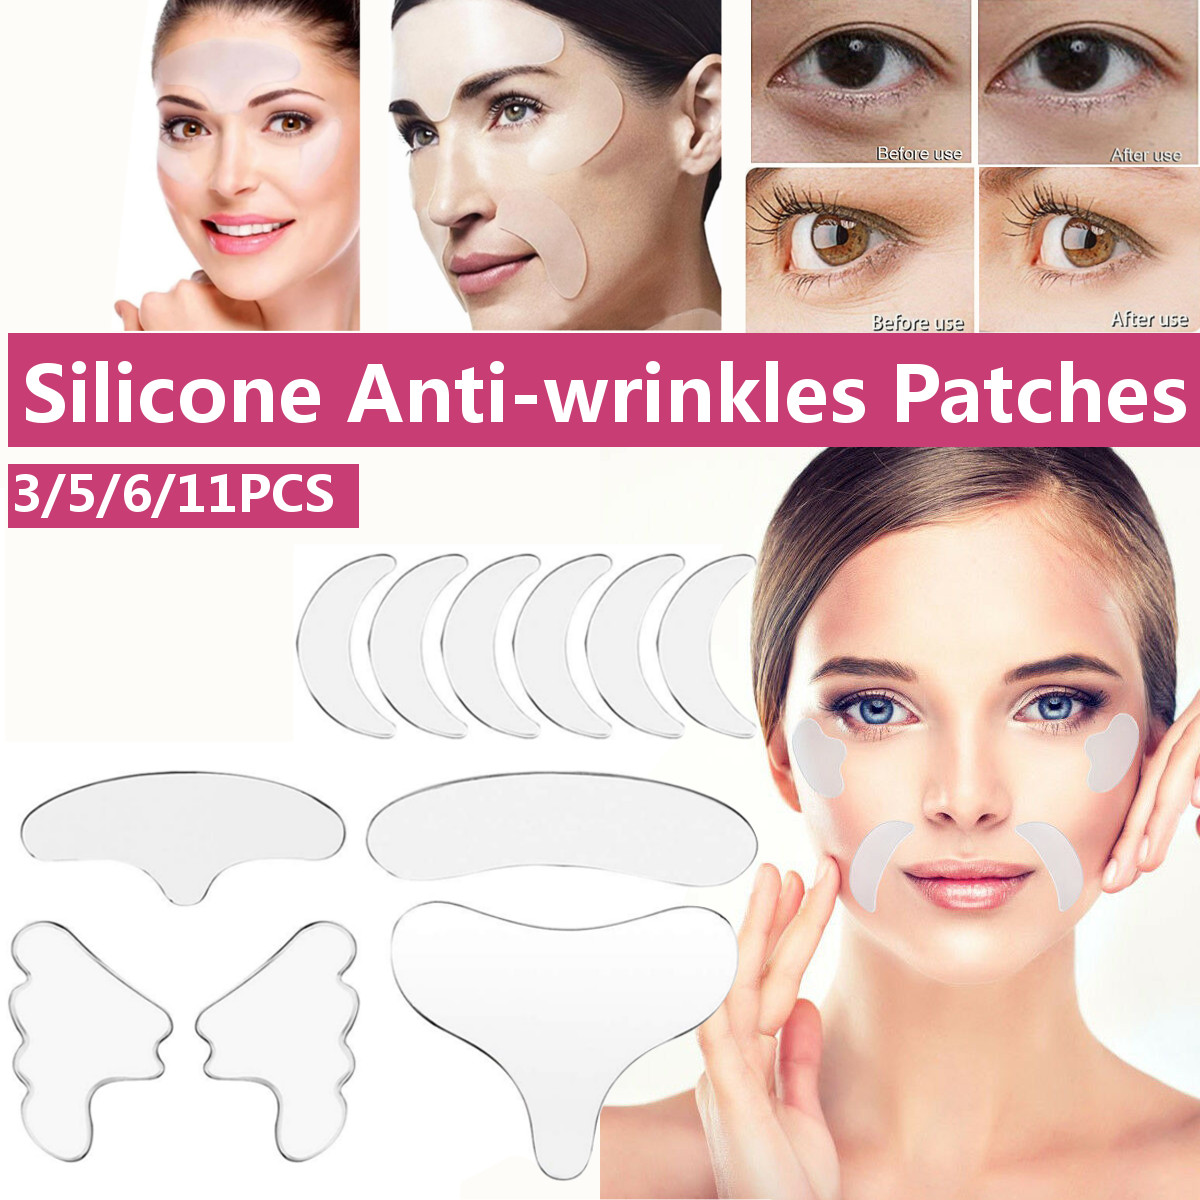 3/5/6/11pcs/set Anti Wrinkle Eye Chin Forehead Skin Care Pads 100% Medical Grade Silicone Reusable Face Lifting Overnight Patche